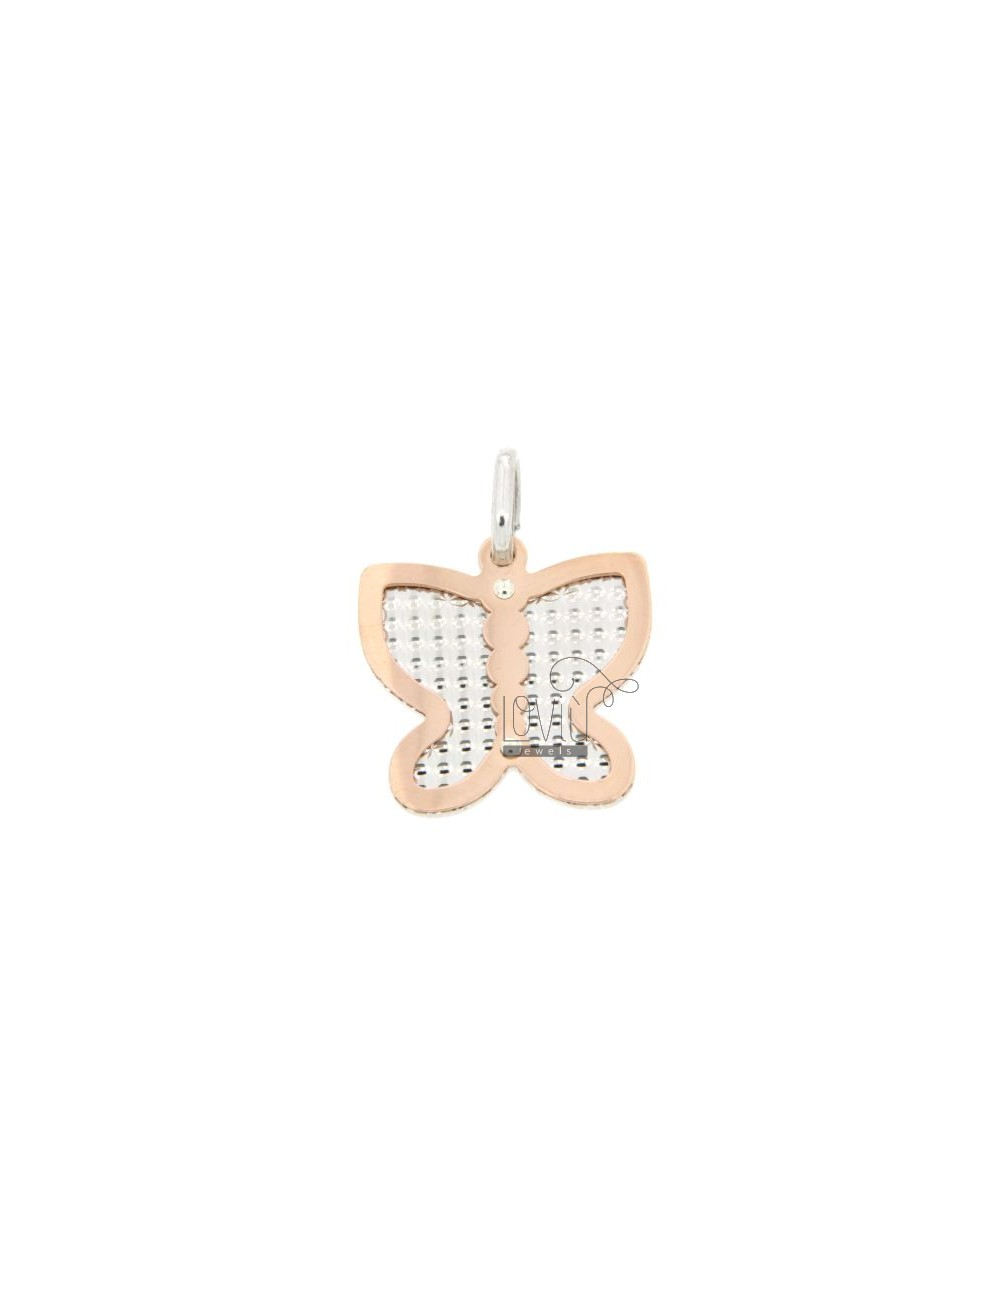 BUTTERFLY BUTTERFLY PENDANT WITH GOLD PLATED PINK DIAMOND AND INSIDE SILVER 925